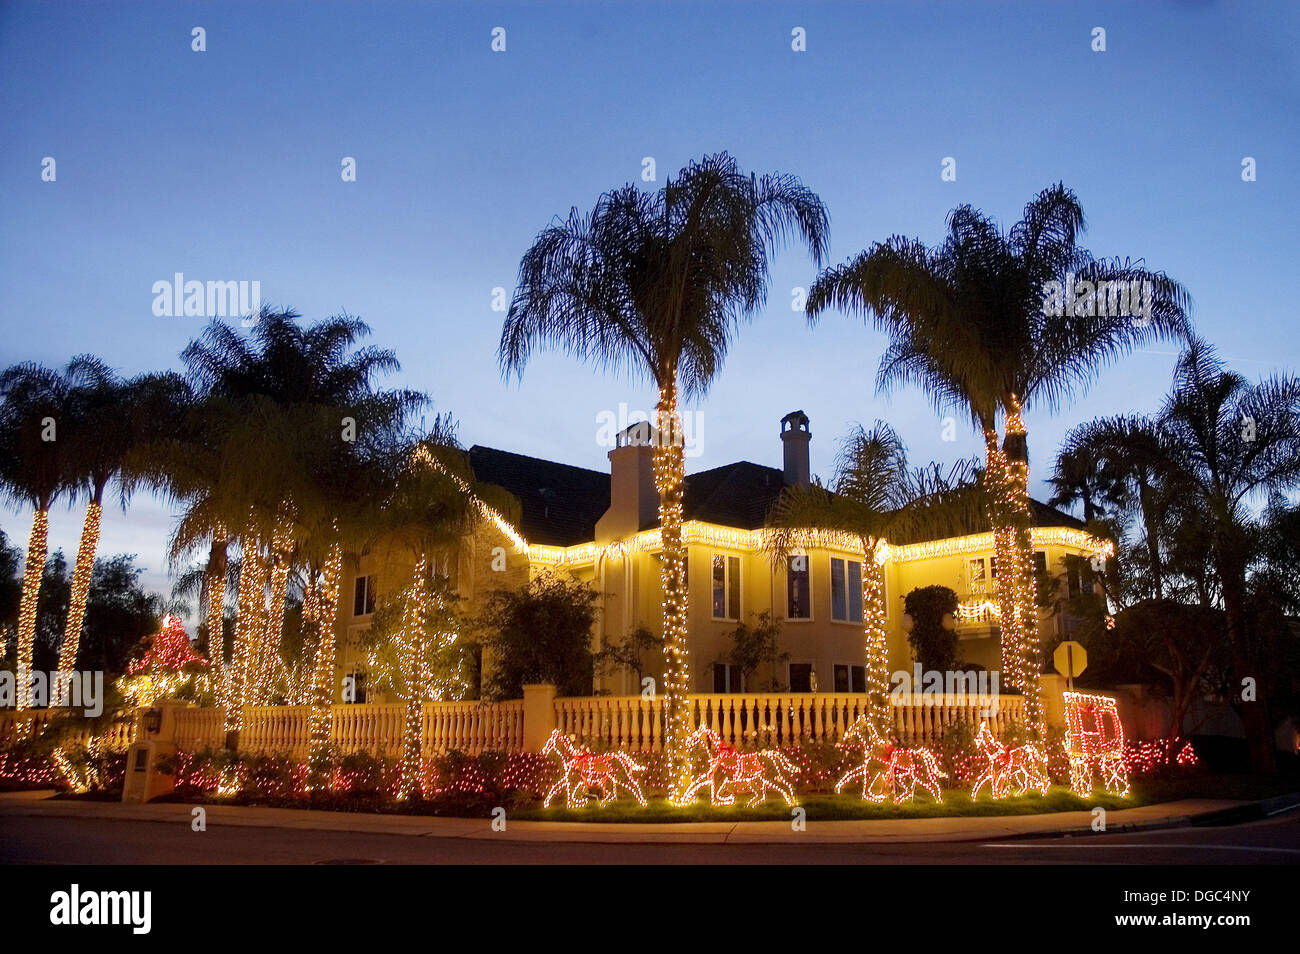 Home christmas decorations nellie gail orange county for California floral and home christmas decorations